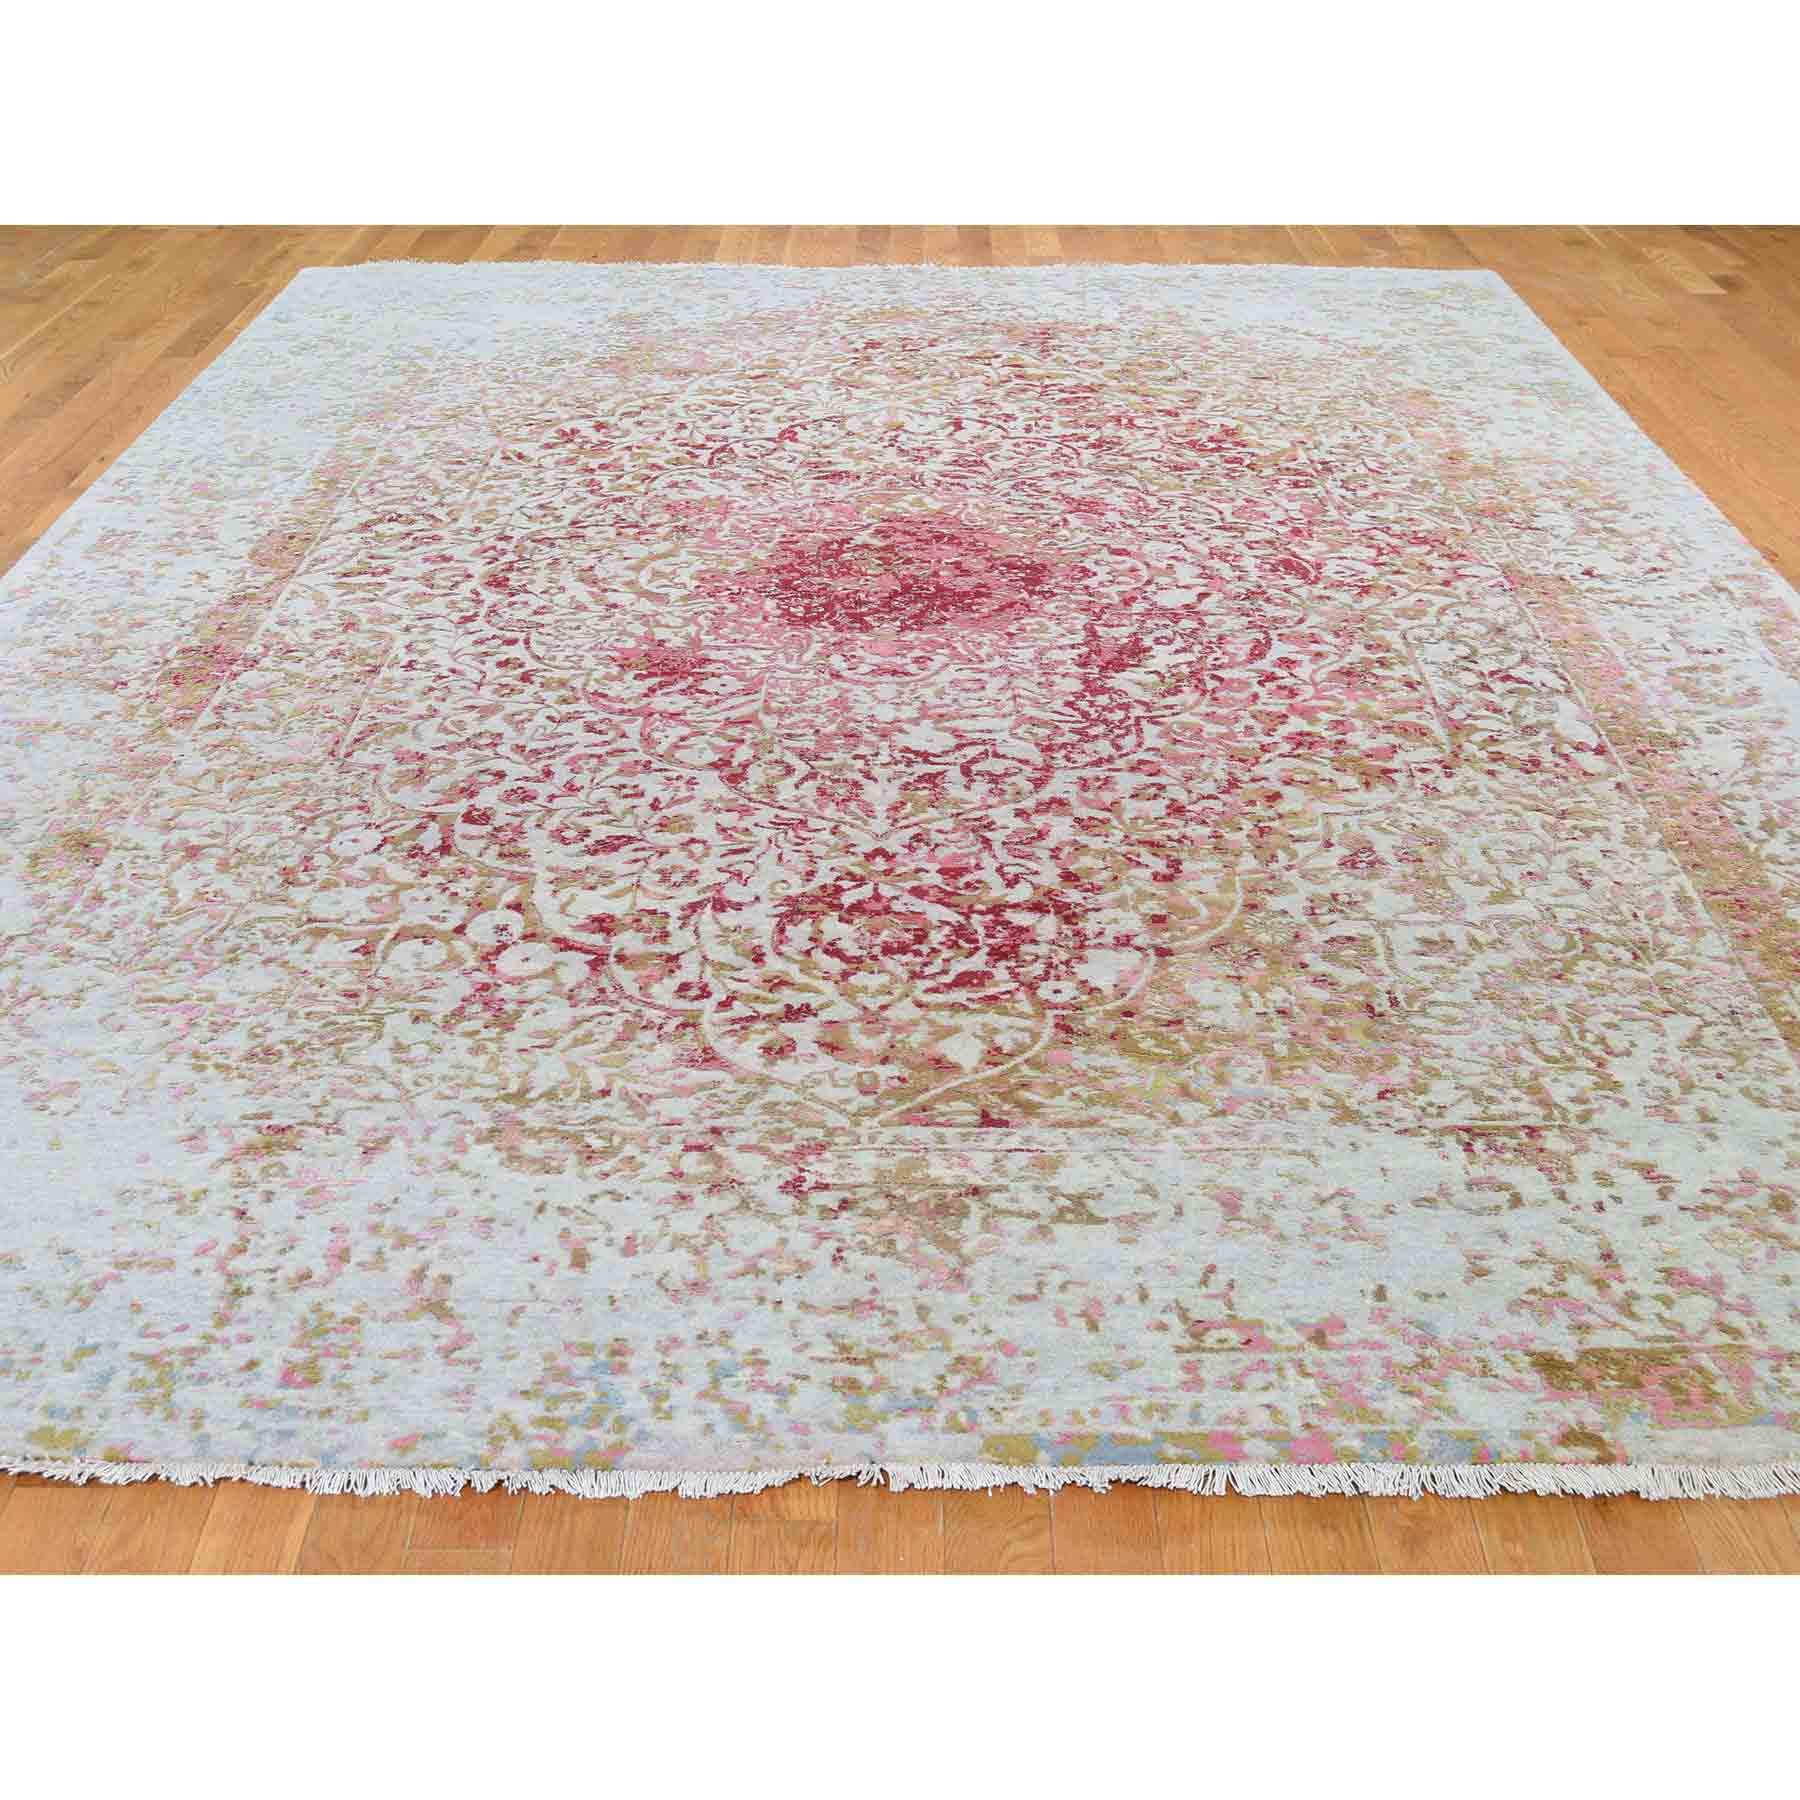 Transitional-Hand-Knotted-Rug-231200